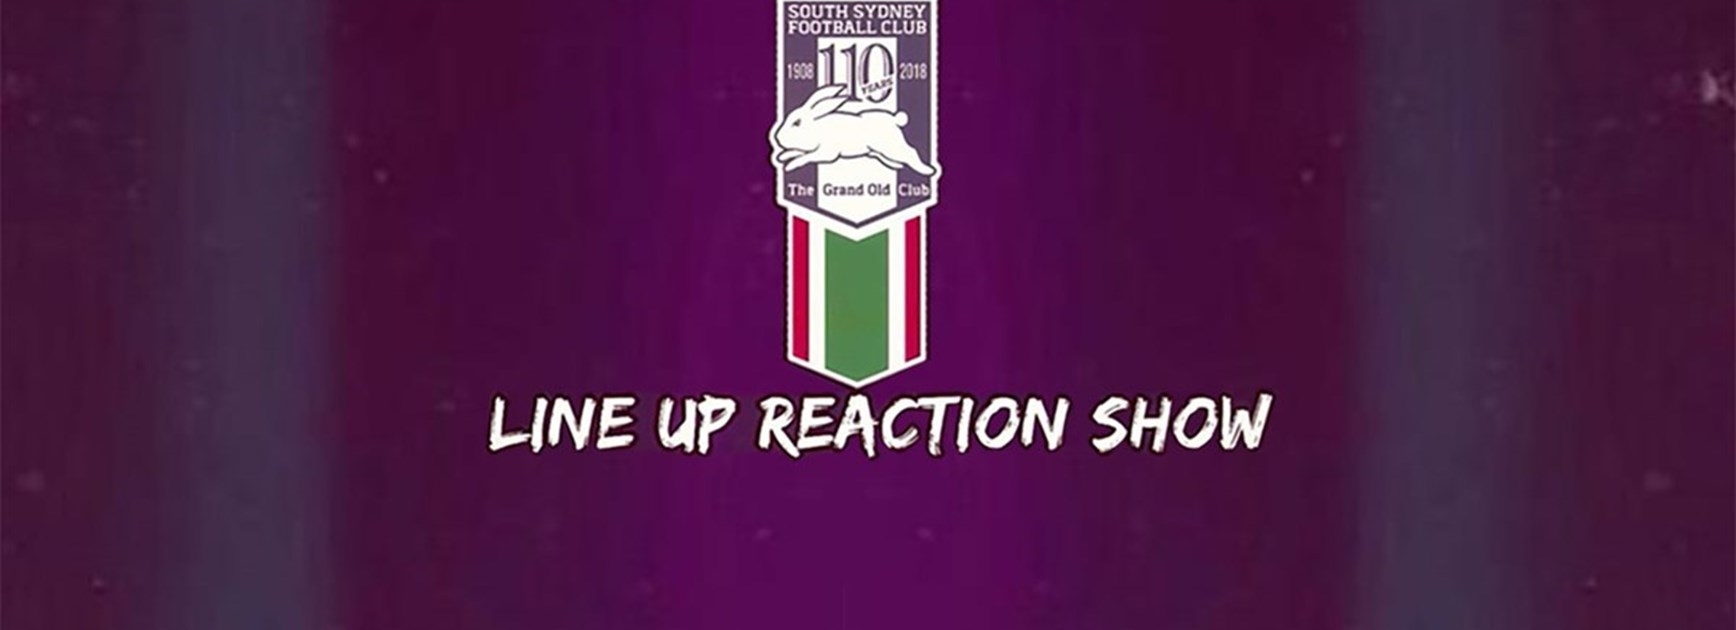 Line Up Reaction Show - Rnd 6 Roosters